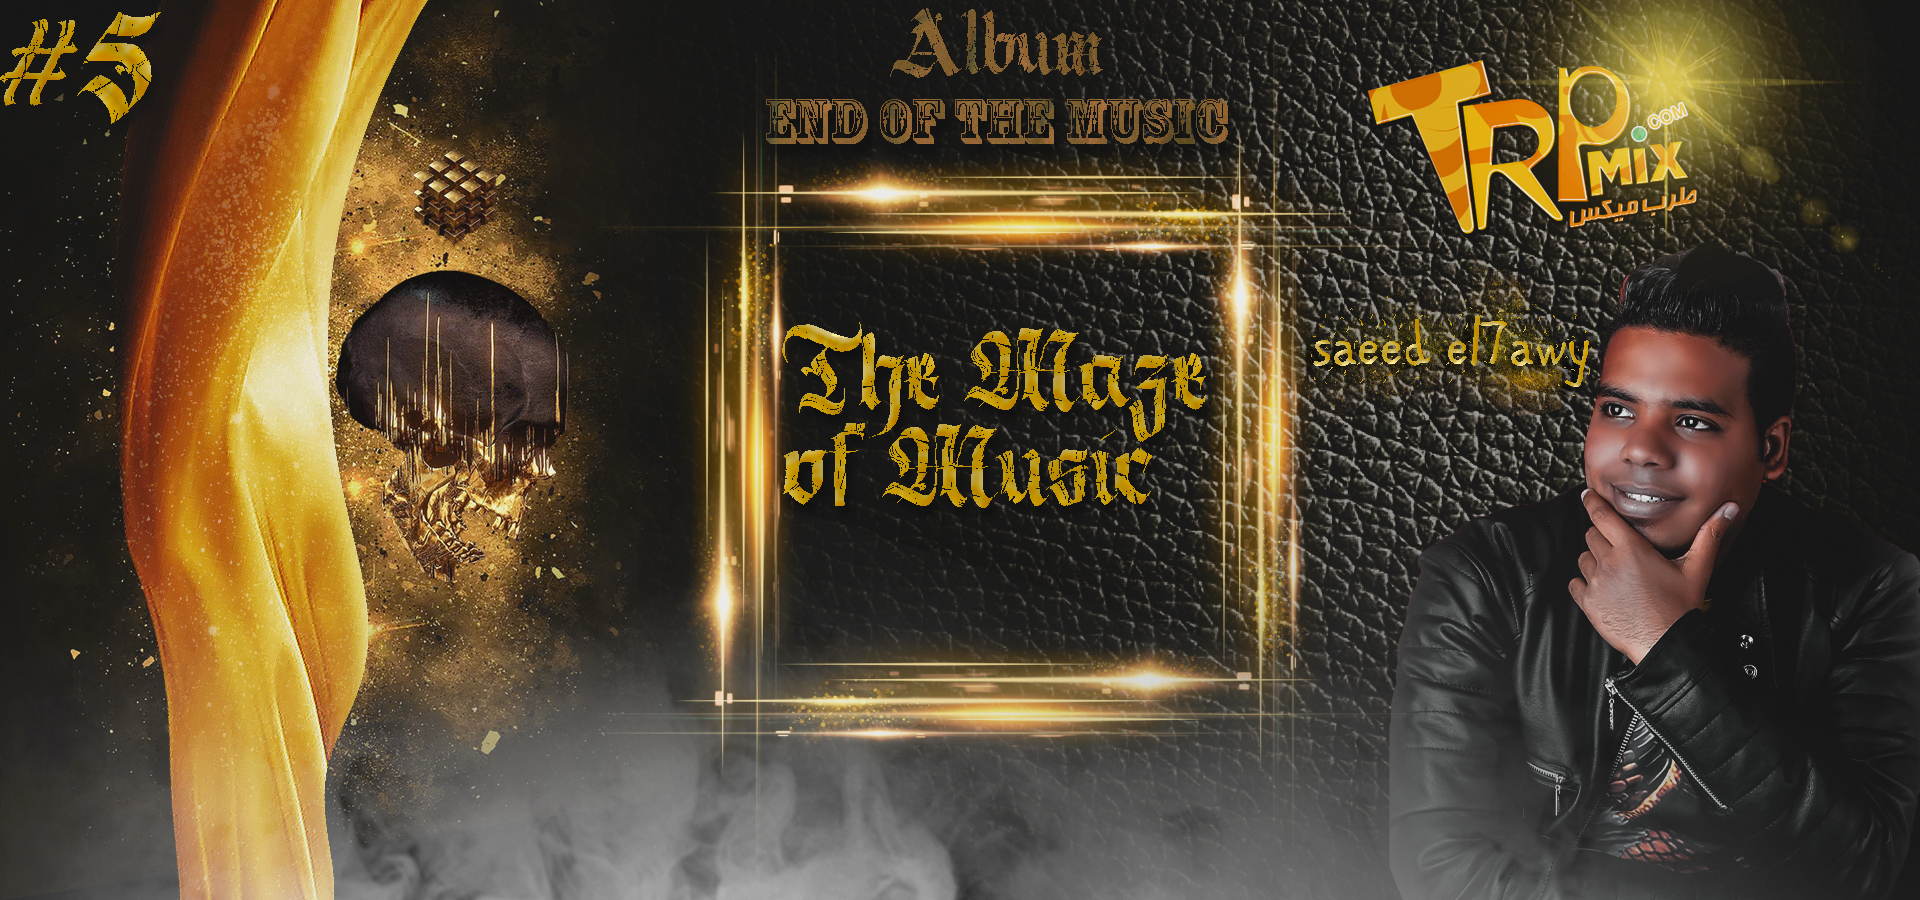 05. music edm trap The maze of music _Album end of the music _music distribution_saeed elhawy 2020